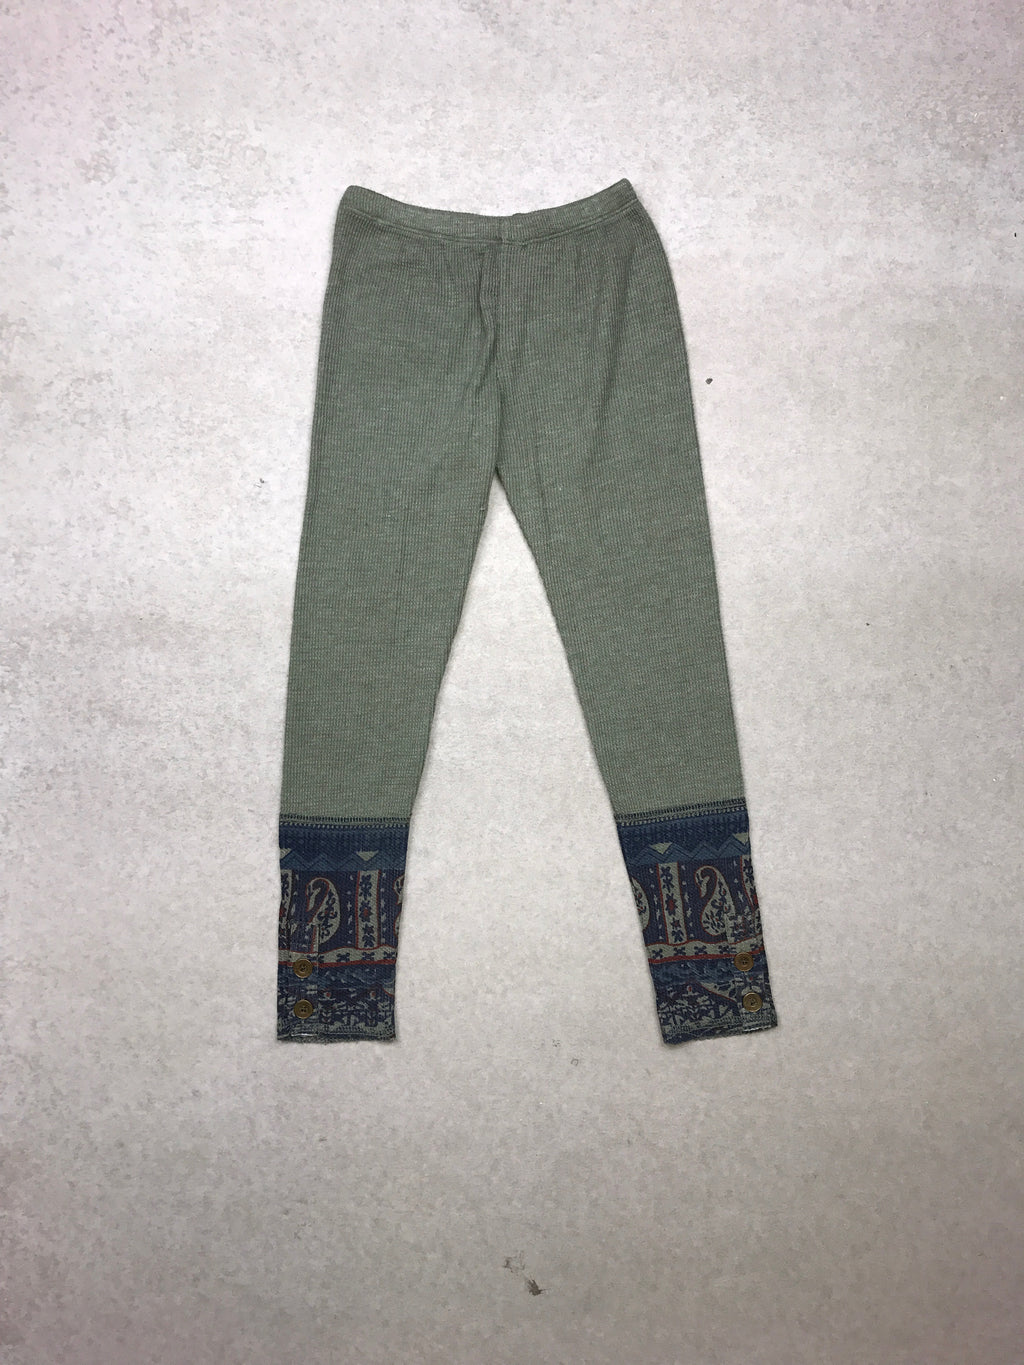 Laney Legging in Olive